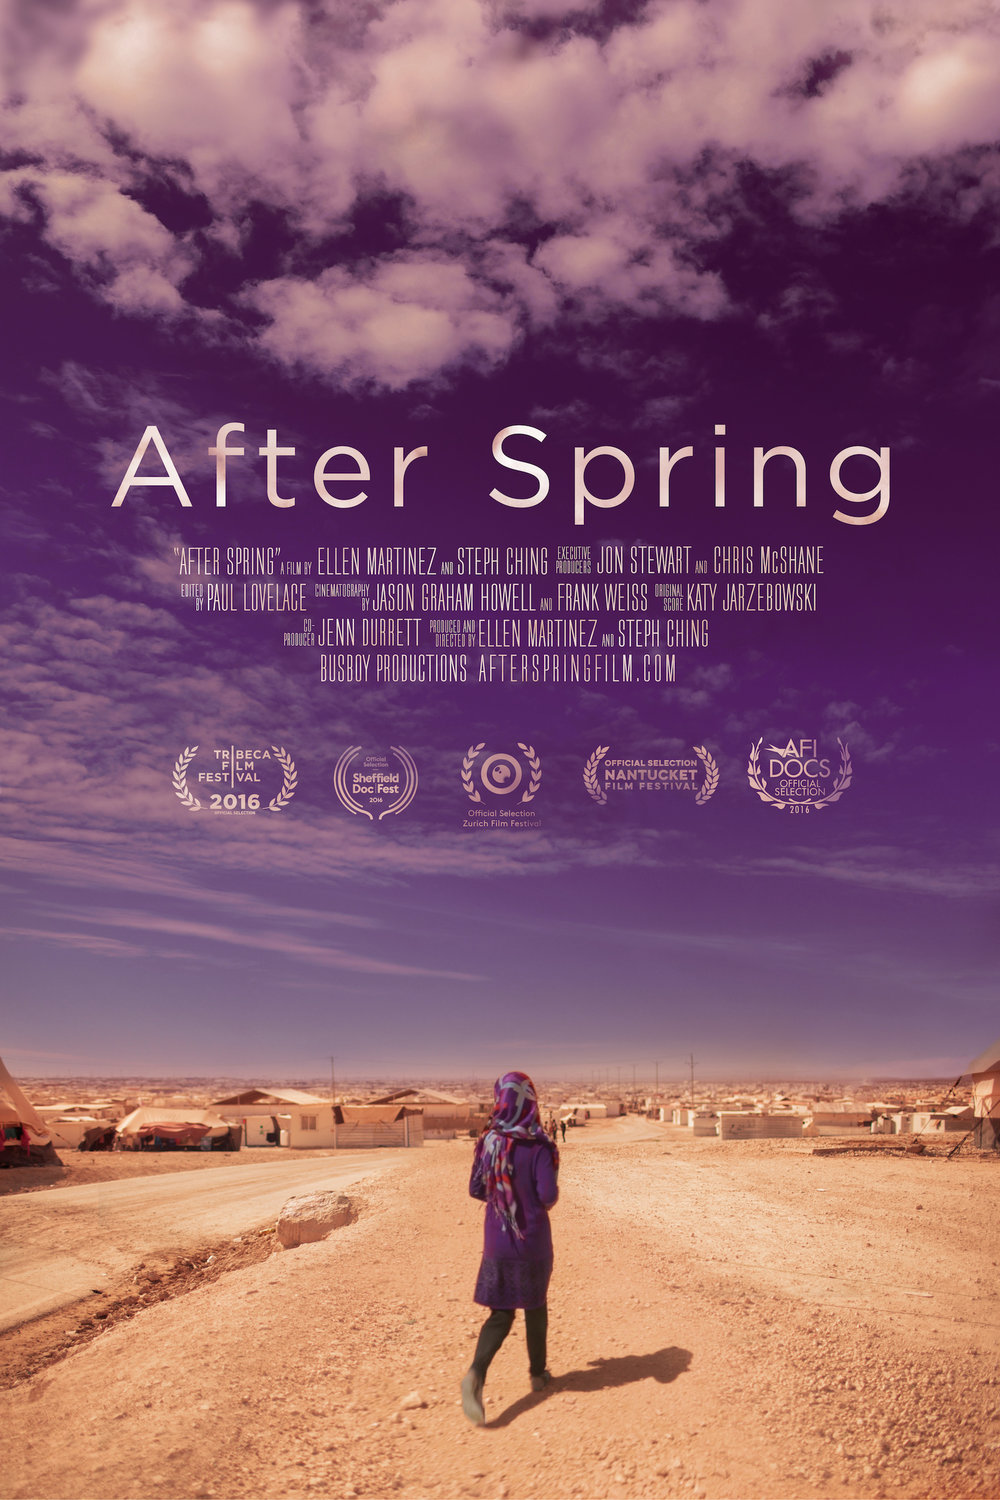 After Spring(2017) - Ellen Martinez,Steph Ching